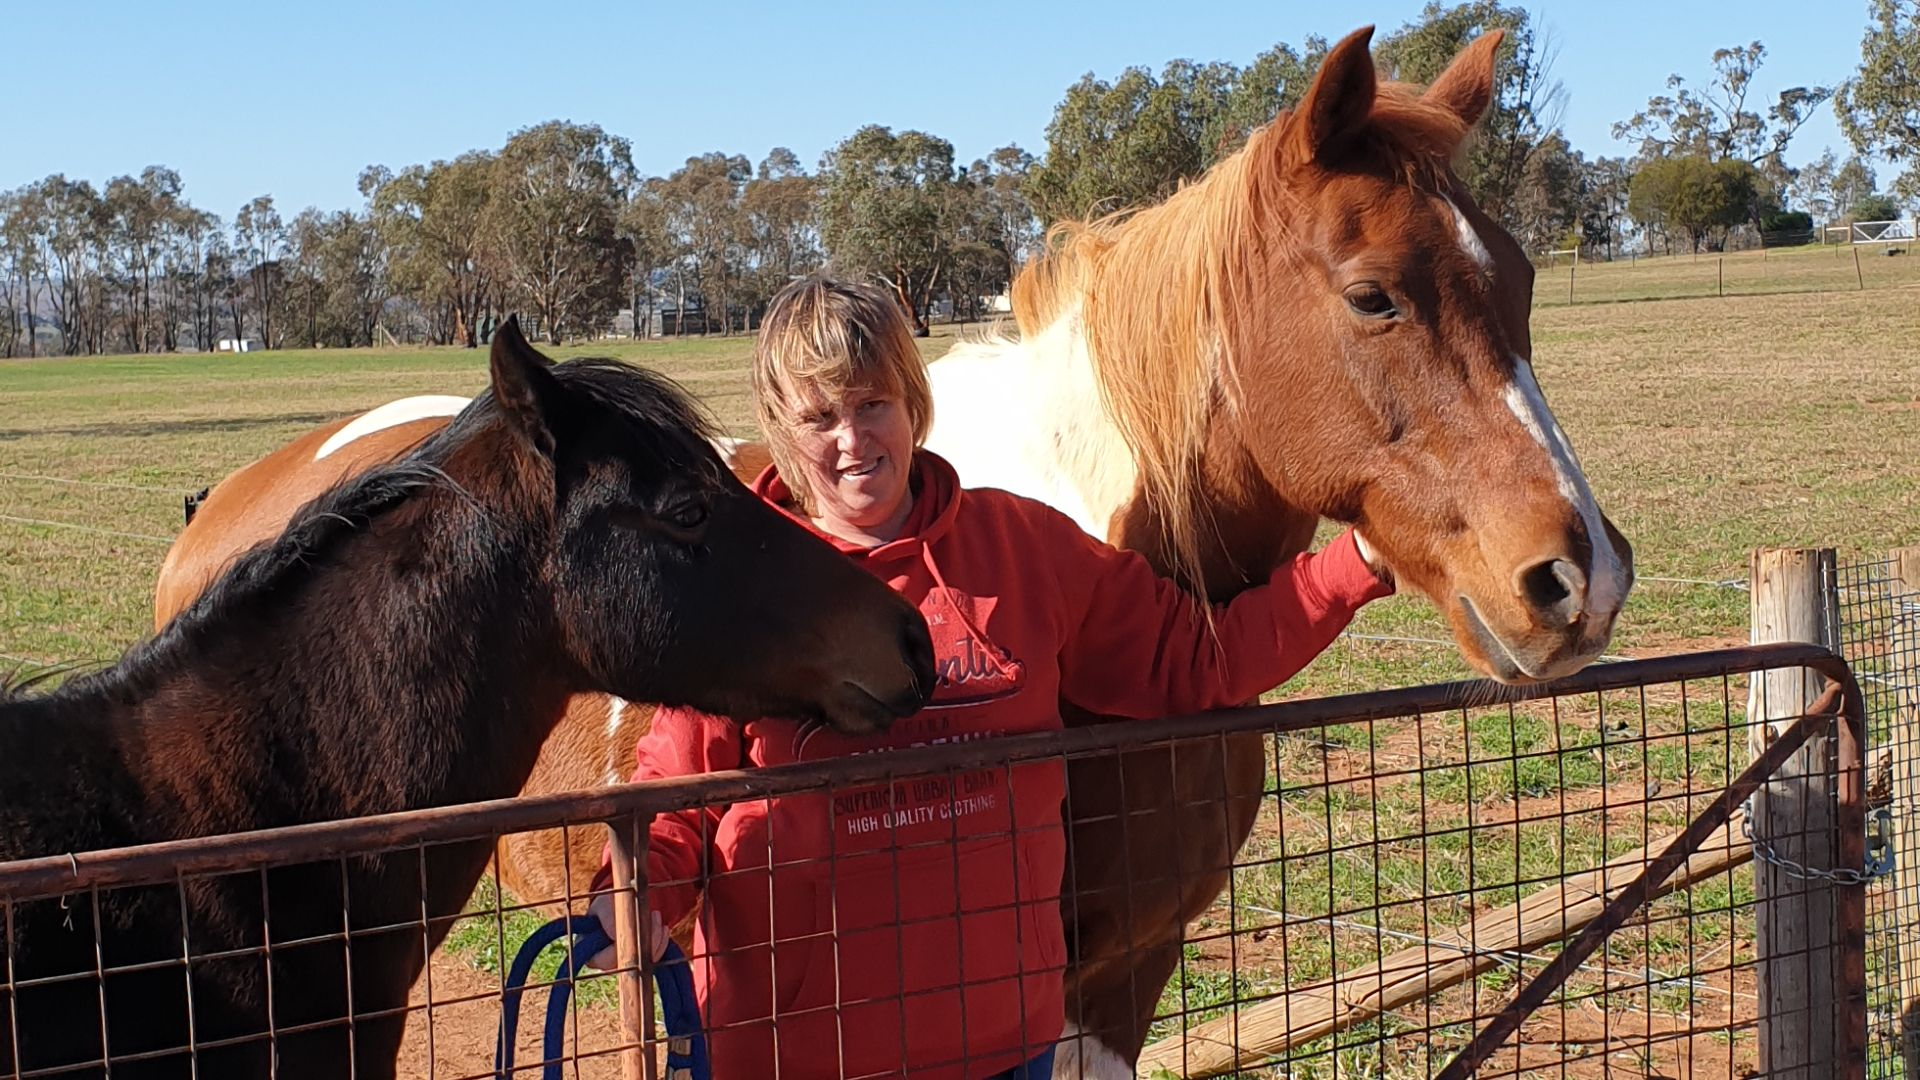 Horse owners worried about long-term financial impact of COVID-19